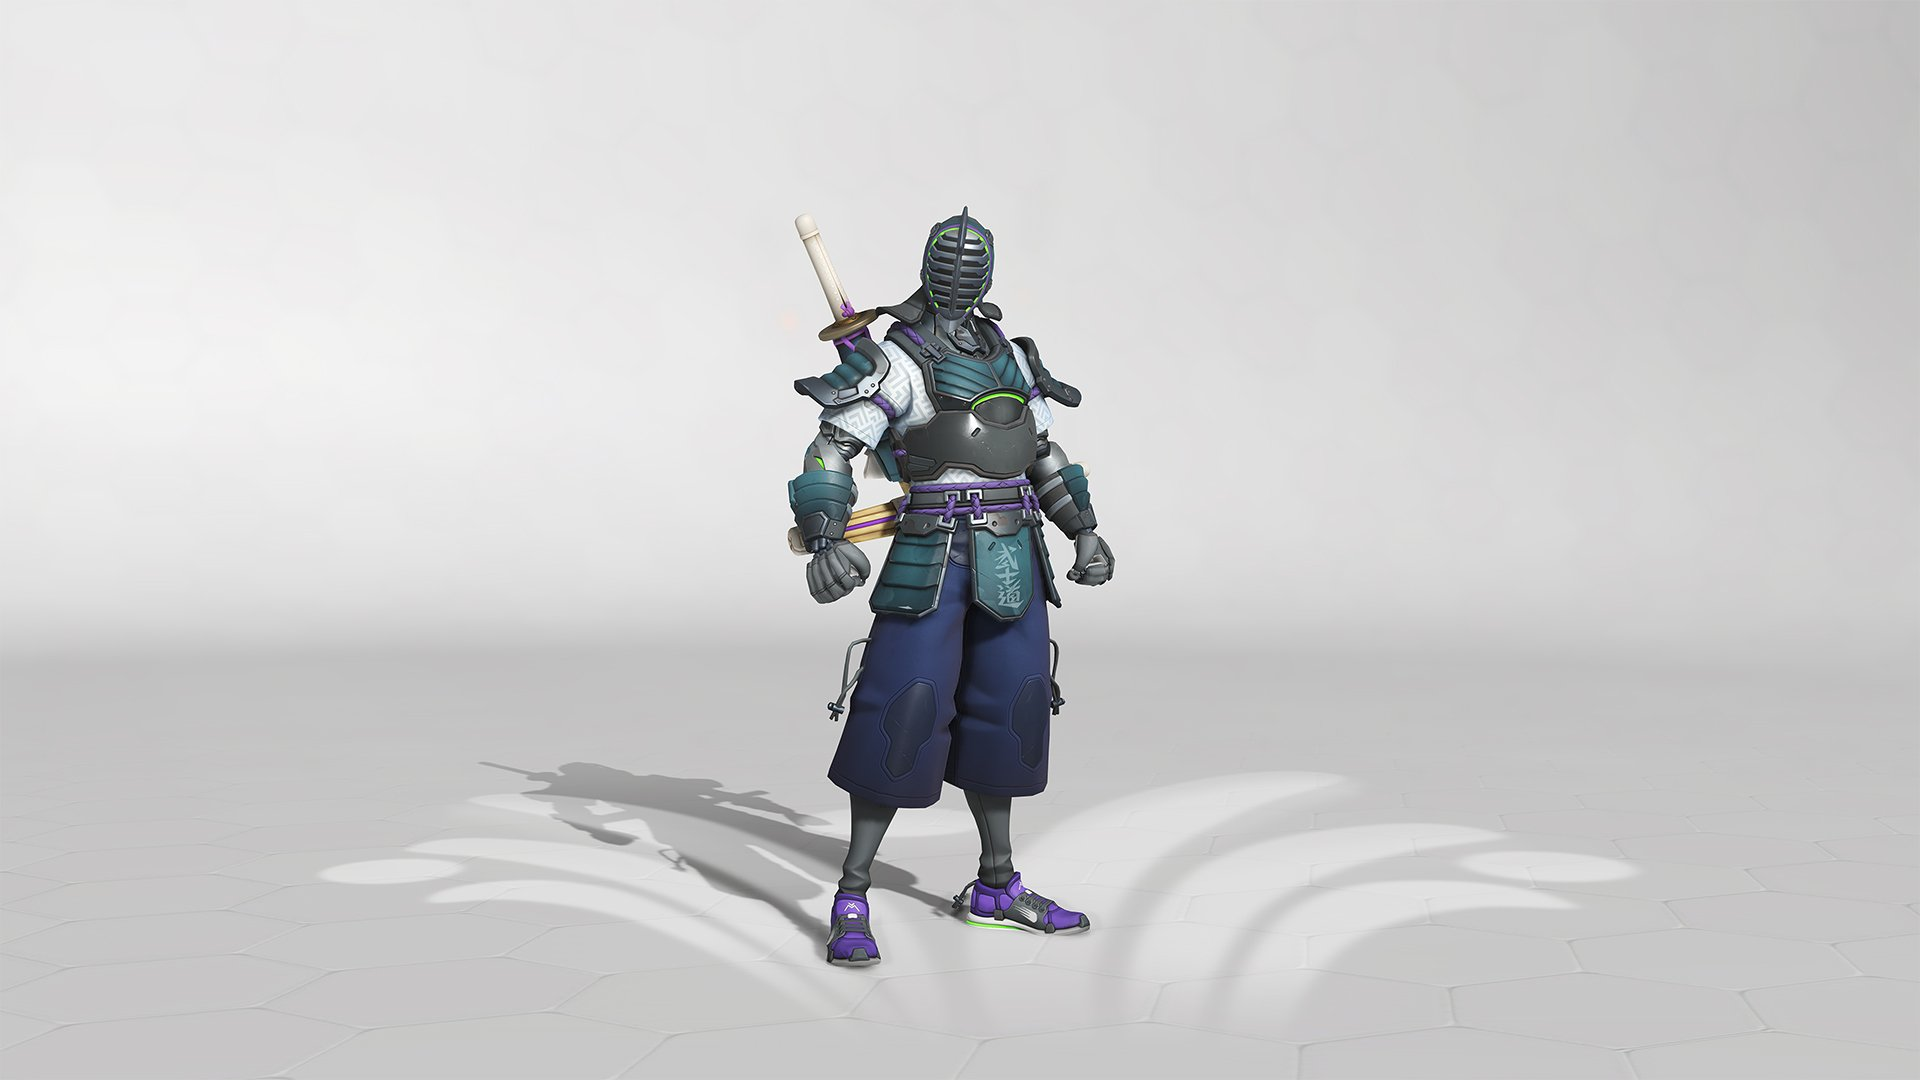 Overwatch summer Games 2019 genji Skin